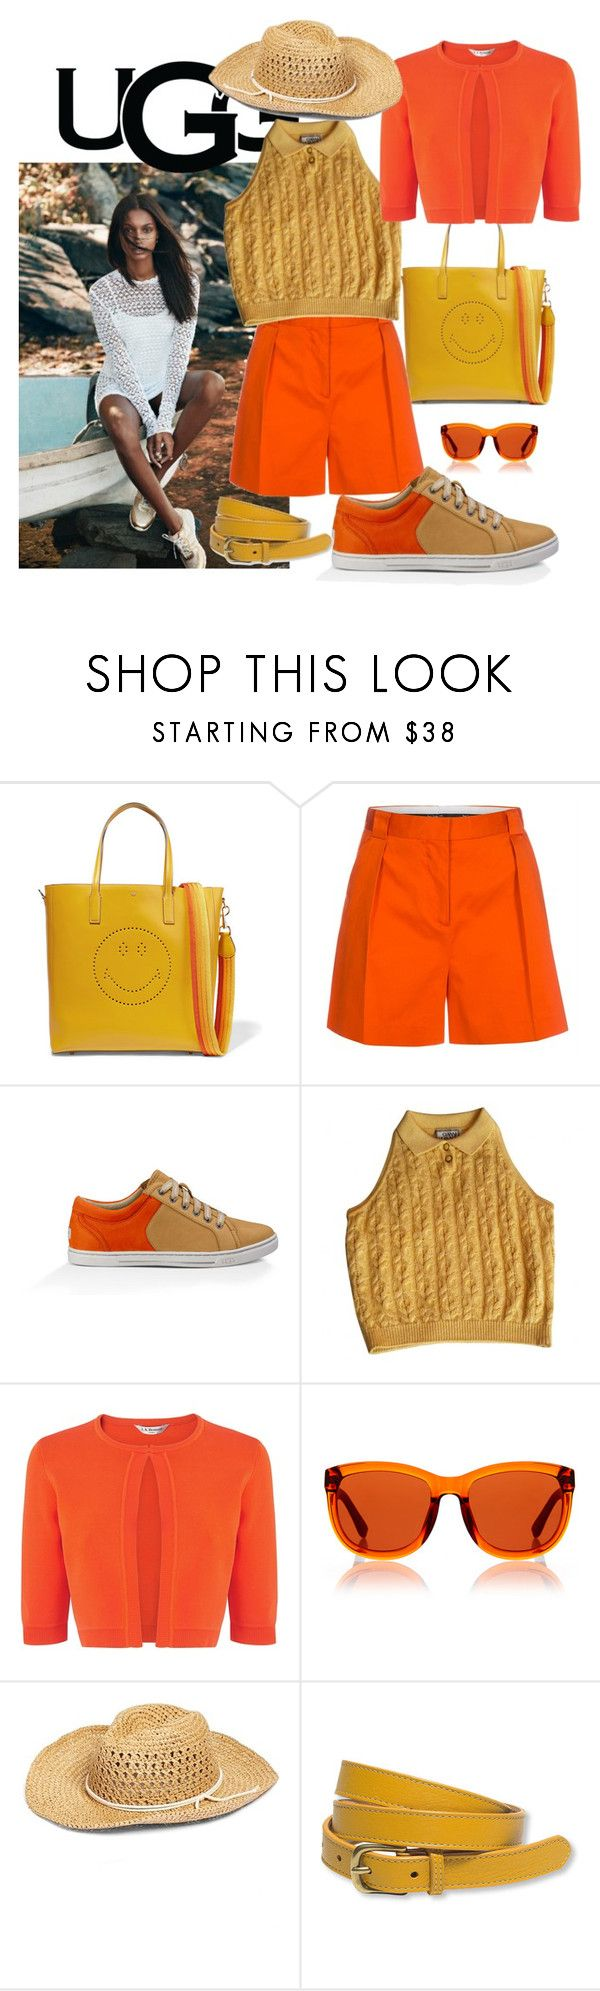 """""""Play With Prints In UGG: Contest Entry"""" by manueladimauro ❤ liked on Polyvore featuring UGG Australia, Anya Hindmarch, Paul Smith, Versace, L.K.Bennett, The Row, Hinge, L.L.Bean and thisisugg"""